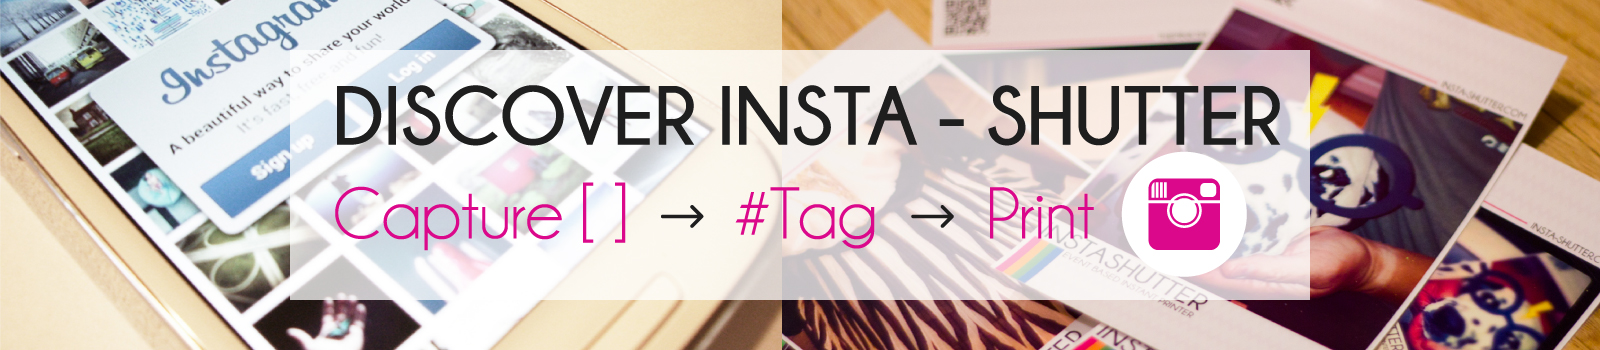 Discover Insta Shutter - Capture, Tag and Print